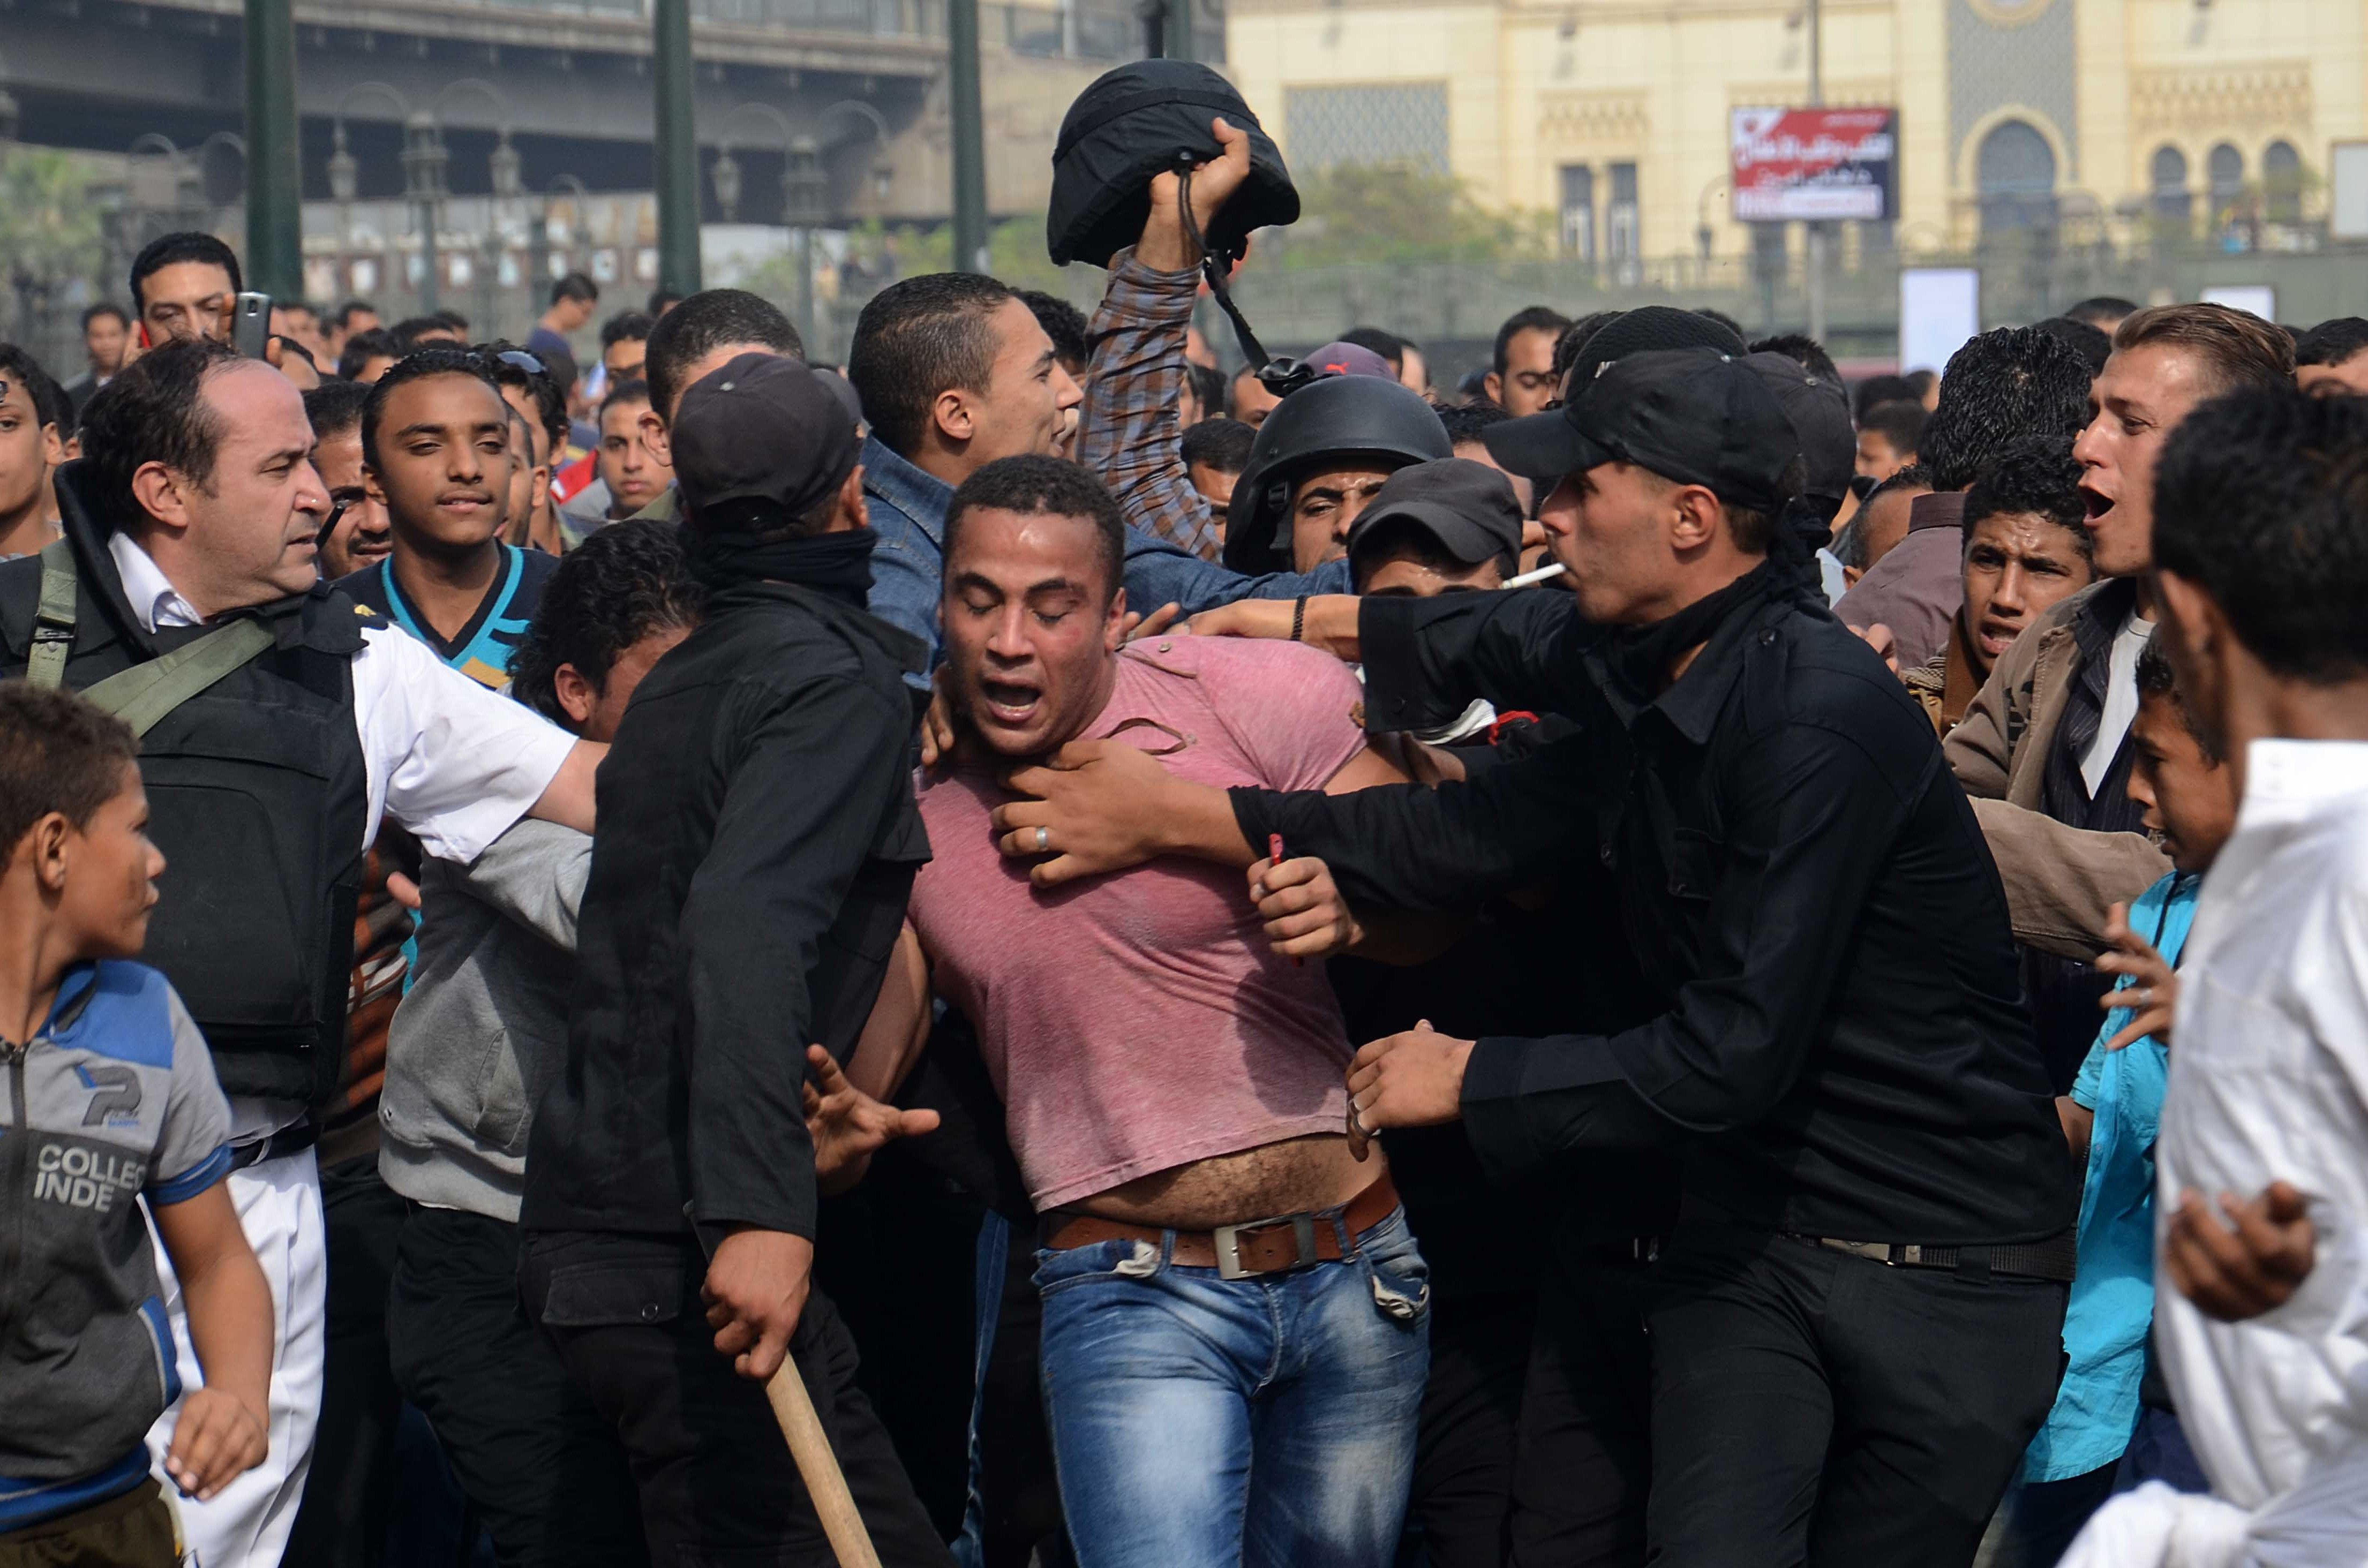 Egyptian policemen arrest a supporter of ousted president Mohamed Morsi during a protest in Ramses Square on the first day of Morsi's trial on November 4, 2013 in Cairo. (AFP PHOTO / MOHAMED ABDELWAHAB)